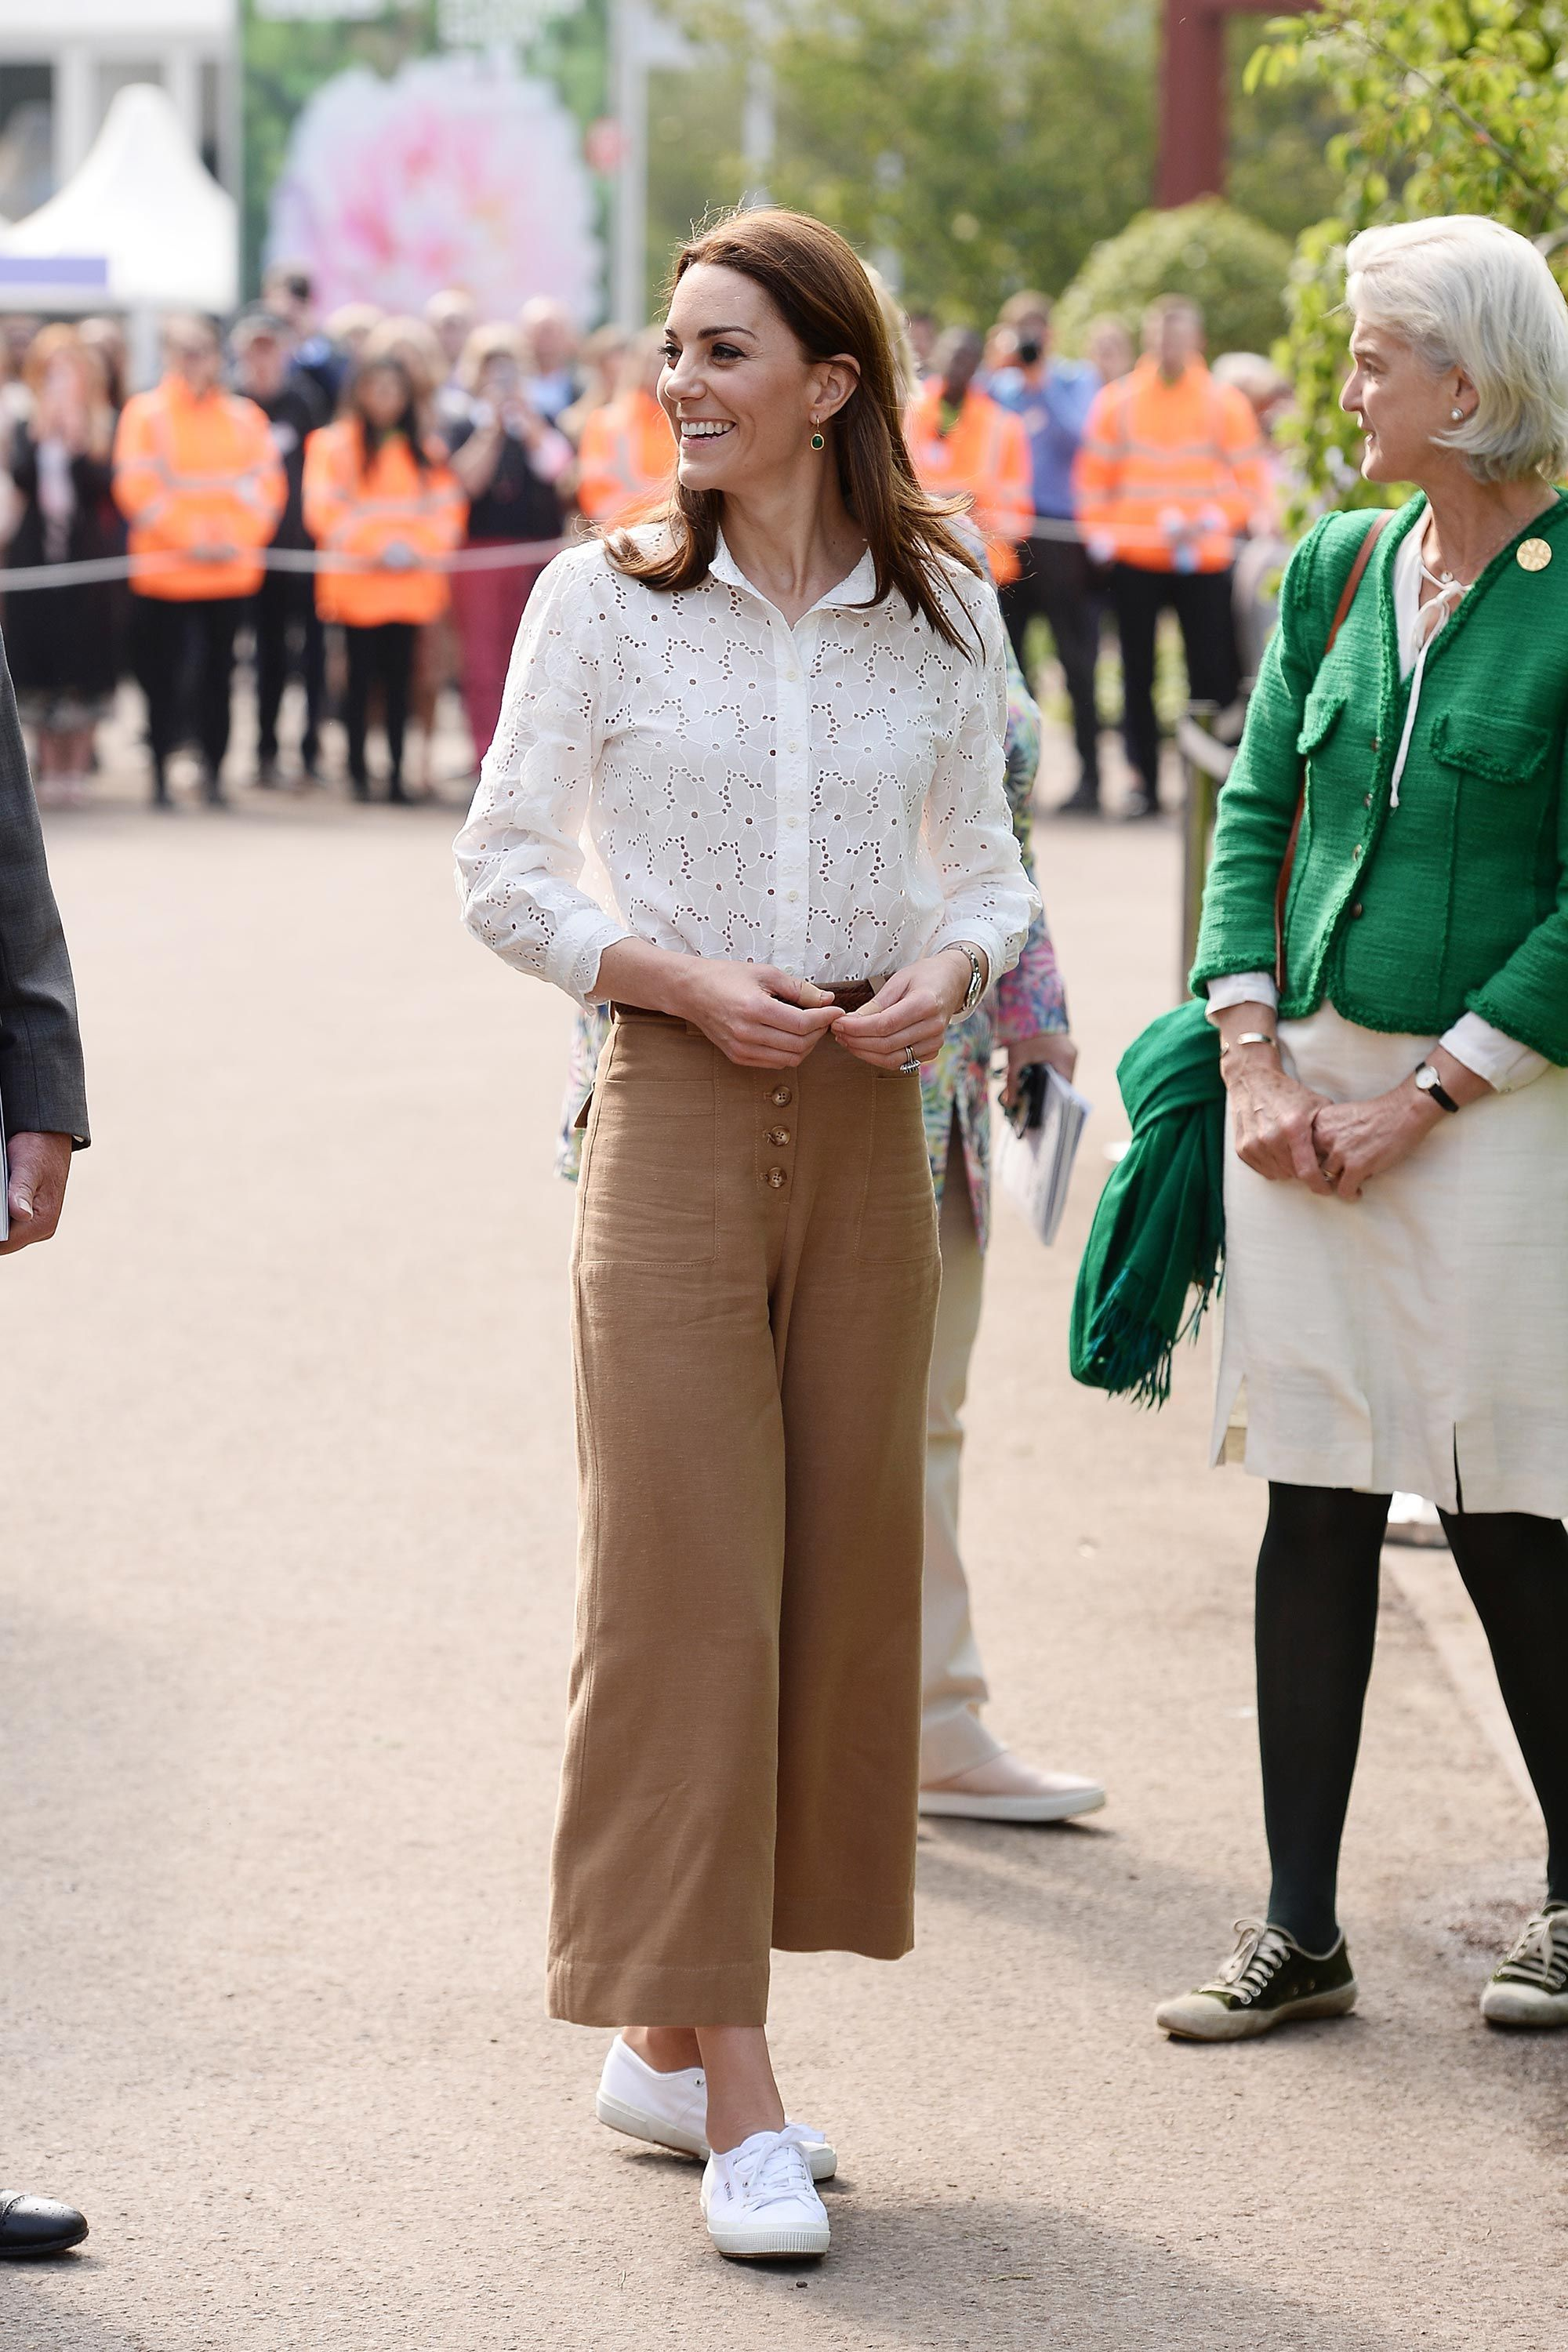 The Duchess of Cambridge masters the wide-leg trouser trend